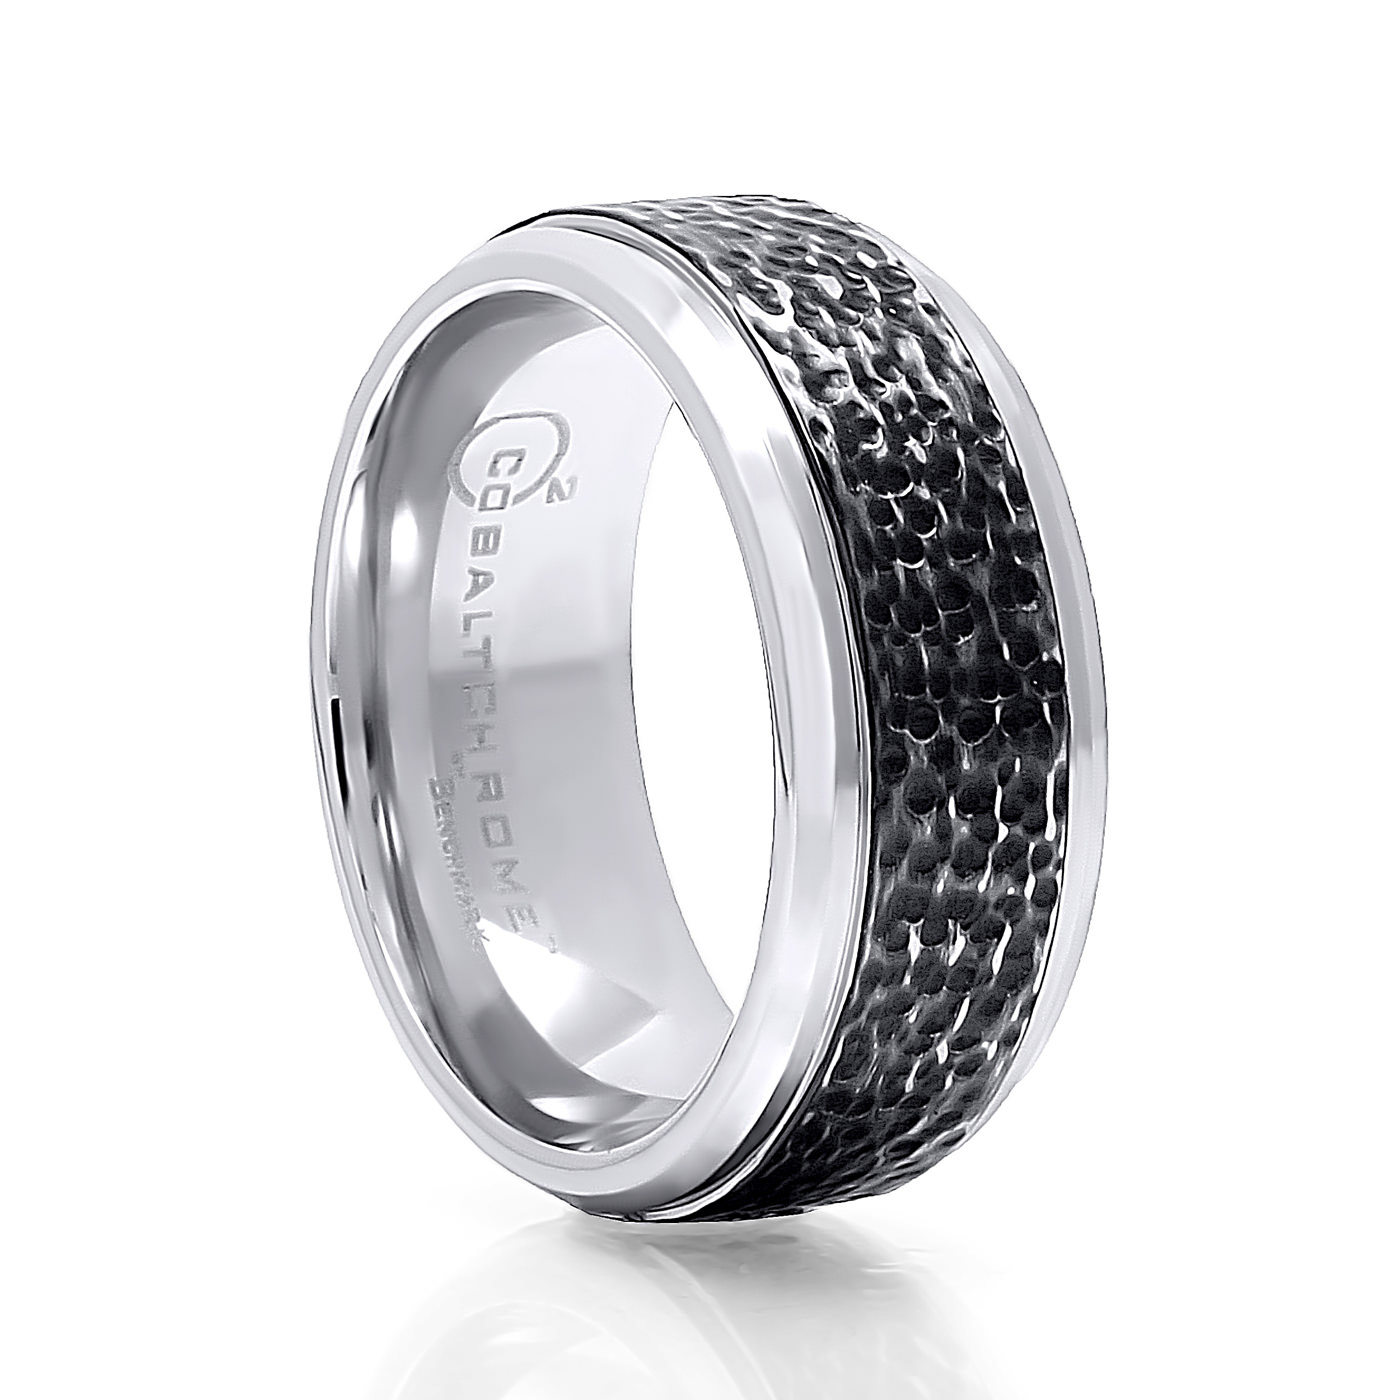 men chrome cobalt mens rings p quick with blackened just from s grooves wedding benchmark designer view band ring